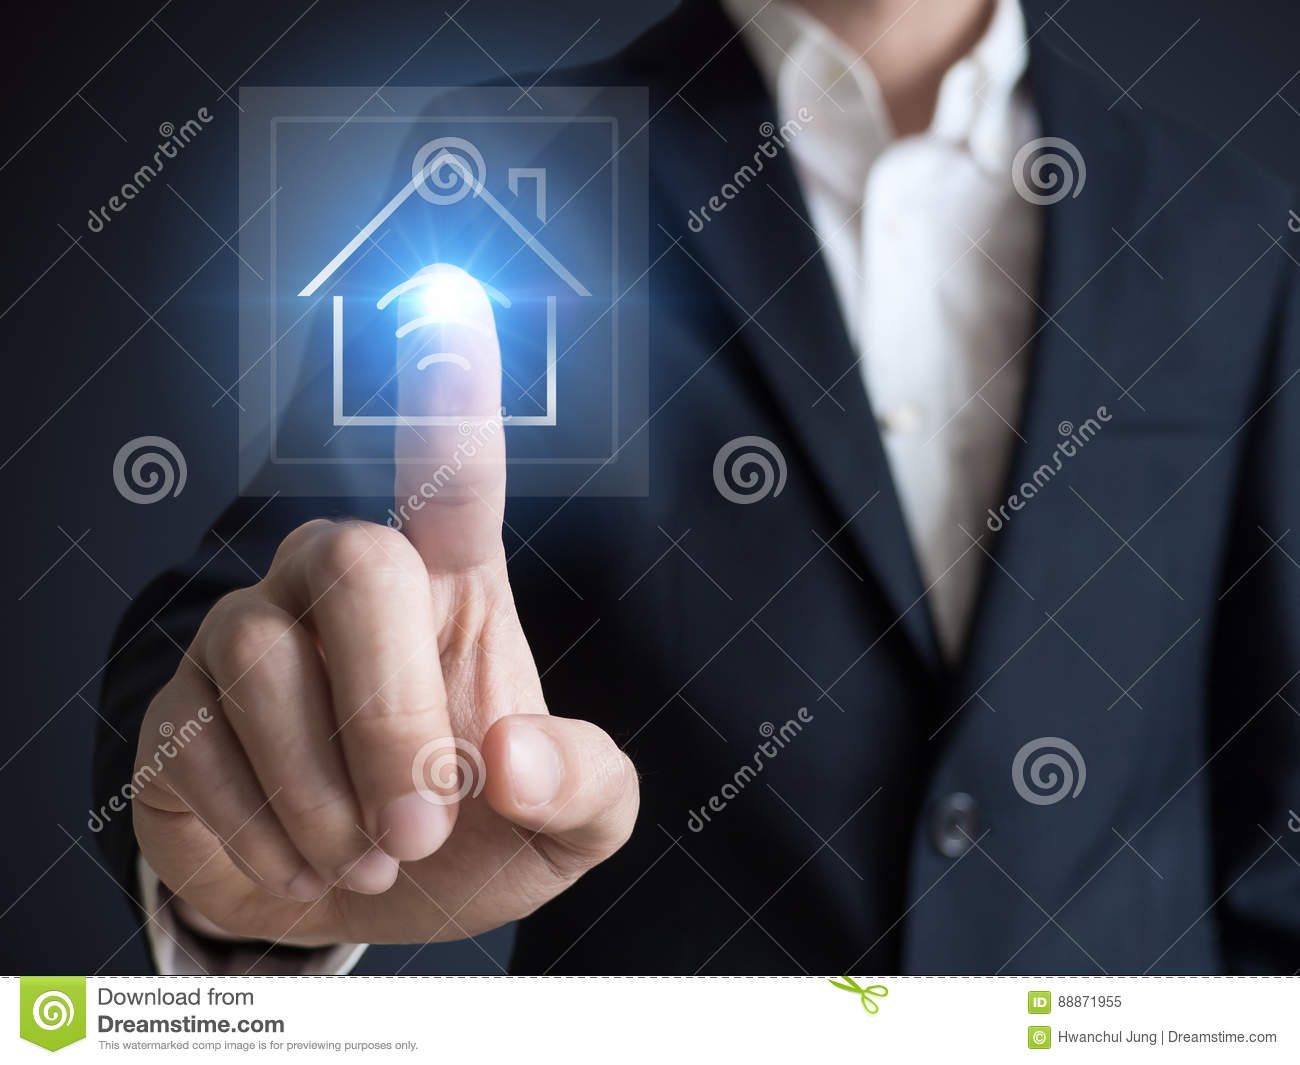 Intelligent house, smart home and home automation concept. Symbol of the house and wireless communication